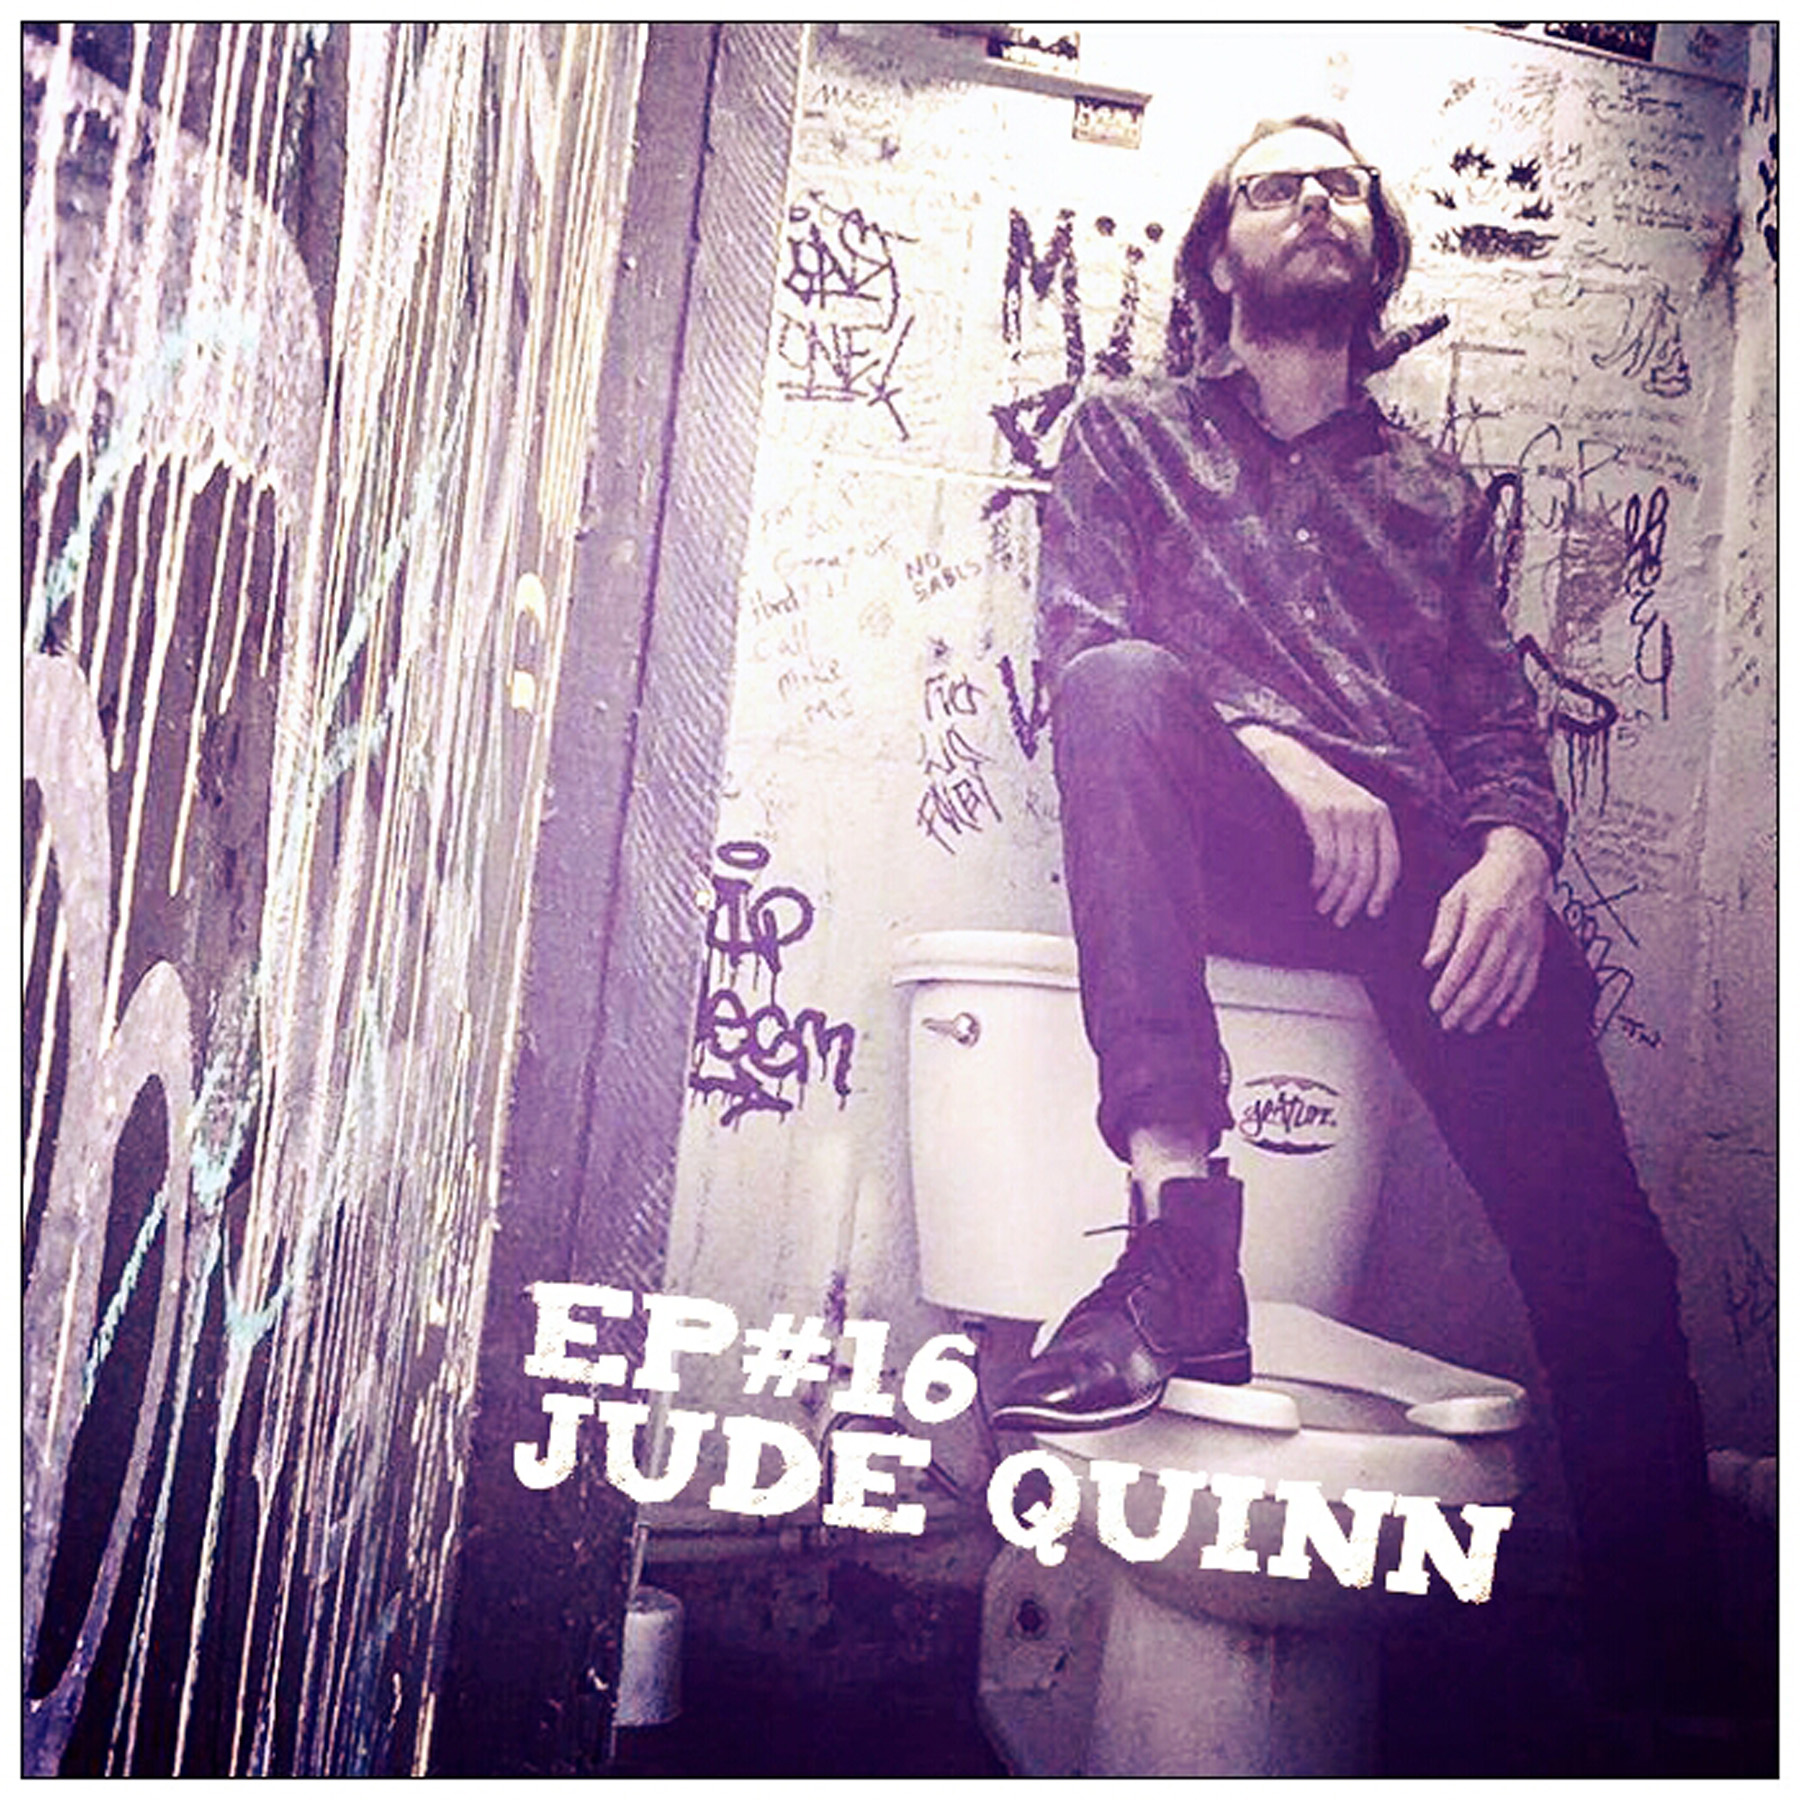 16. Episode Sixteen. Jude Quinn, Songwriter & Music Producer.